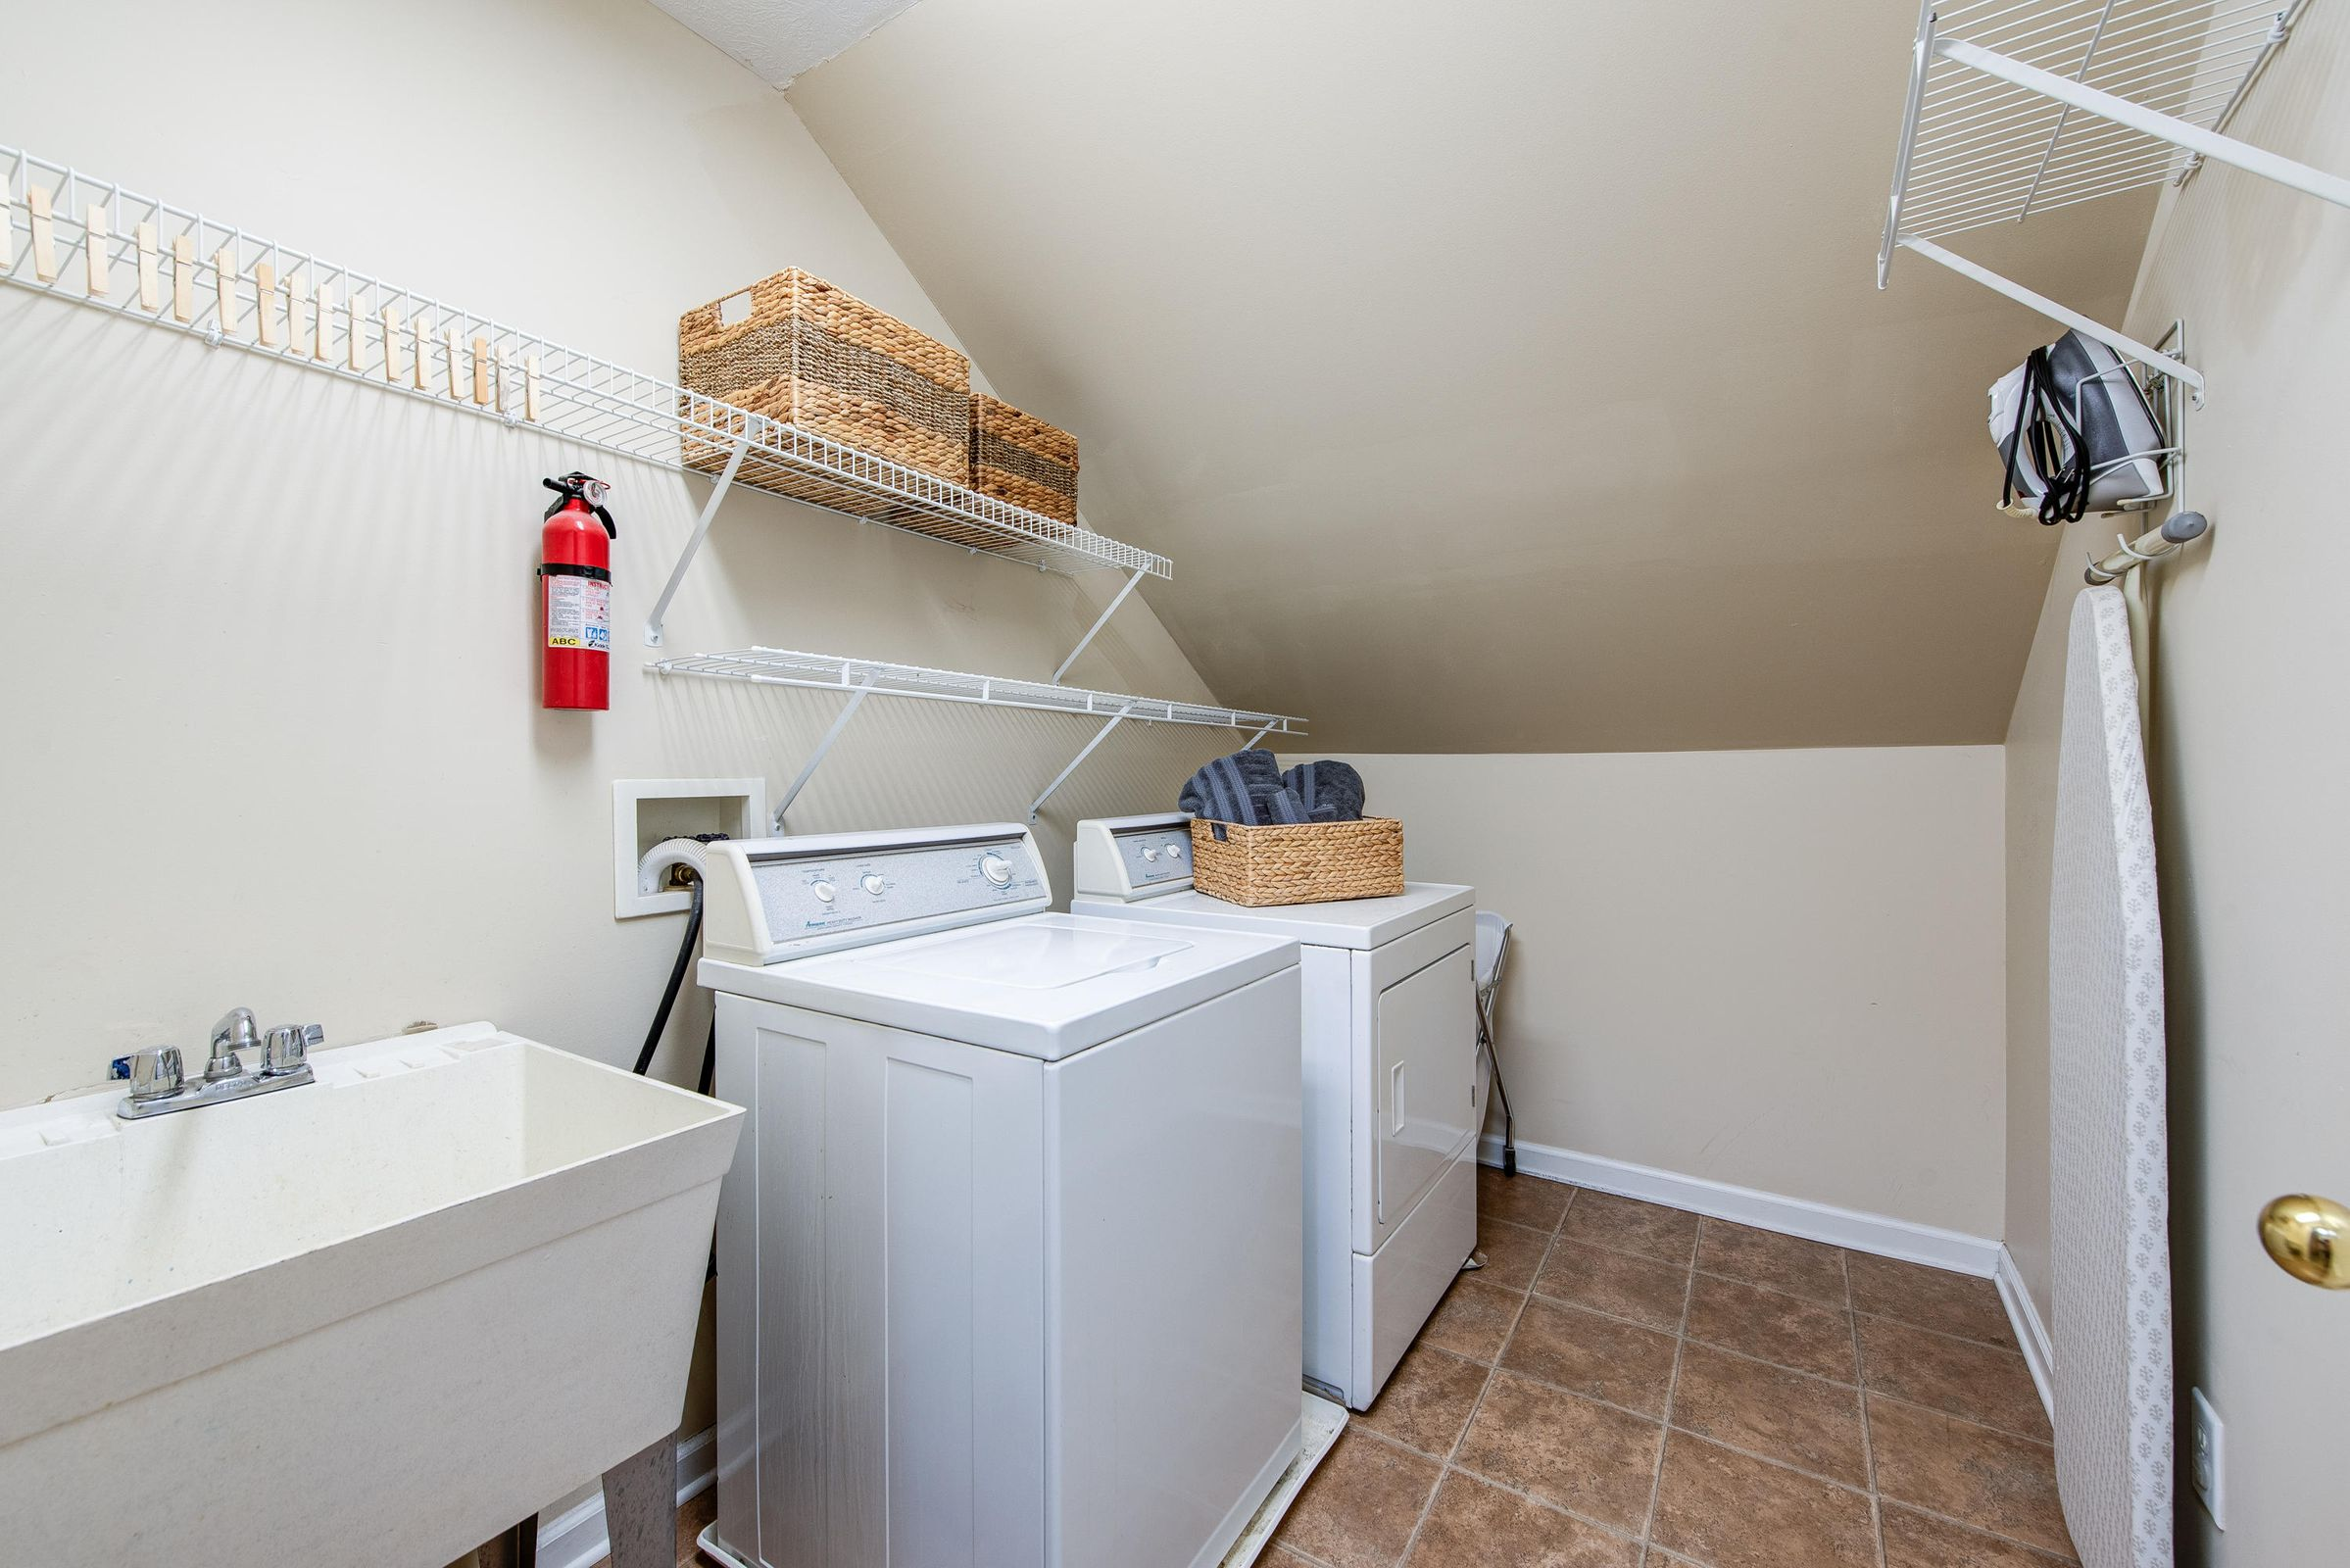 2nd floor - laundry room